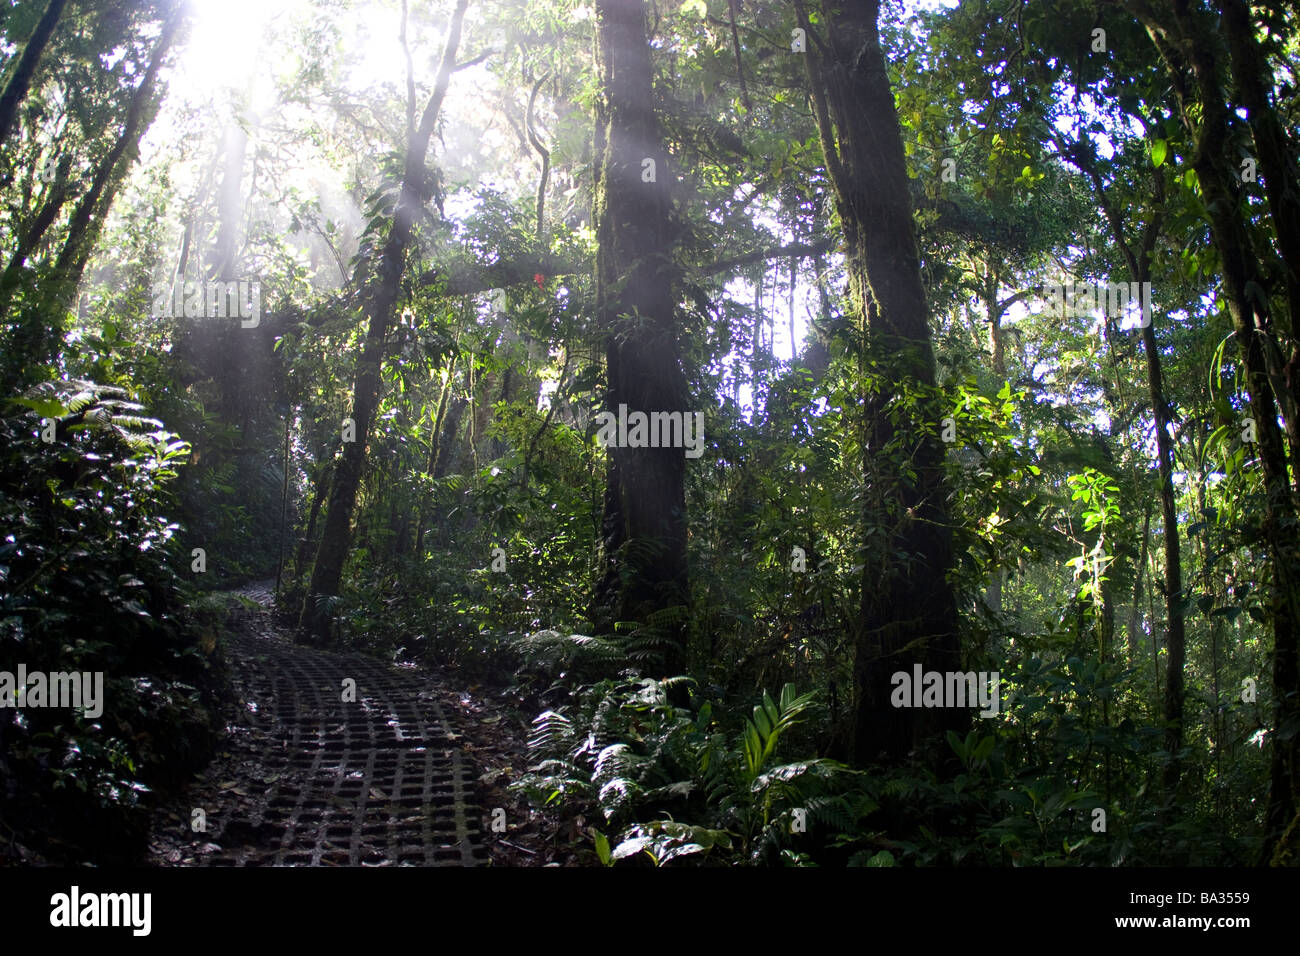 Light shines through trees in rain forest in Costa Rica, Central America - Stock Image